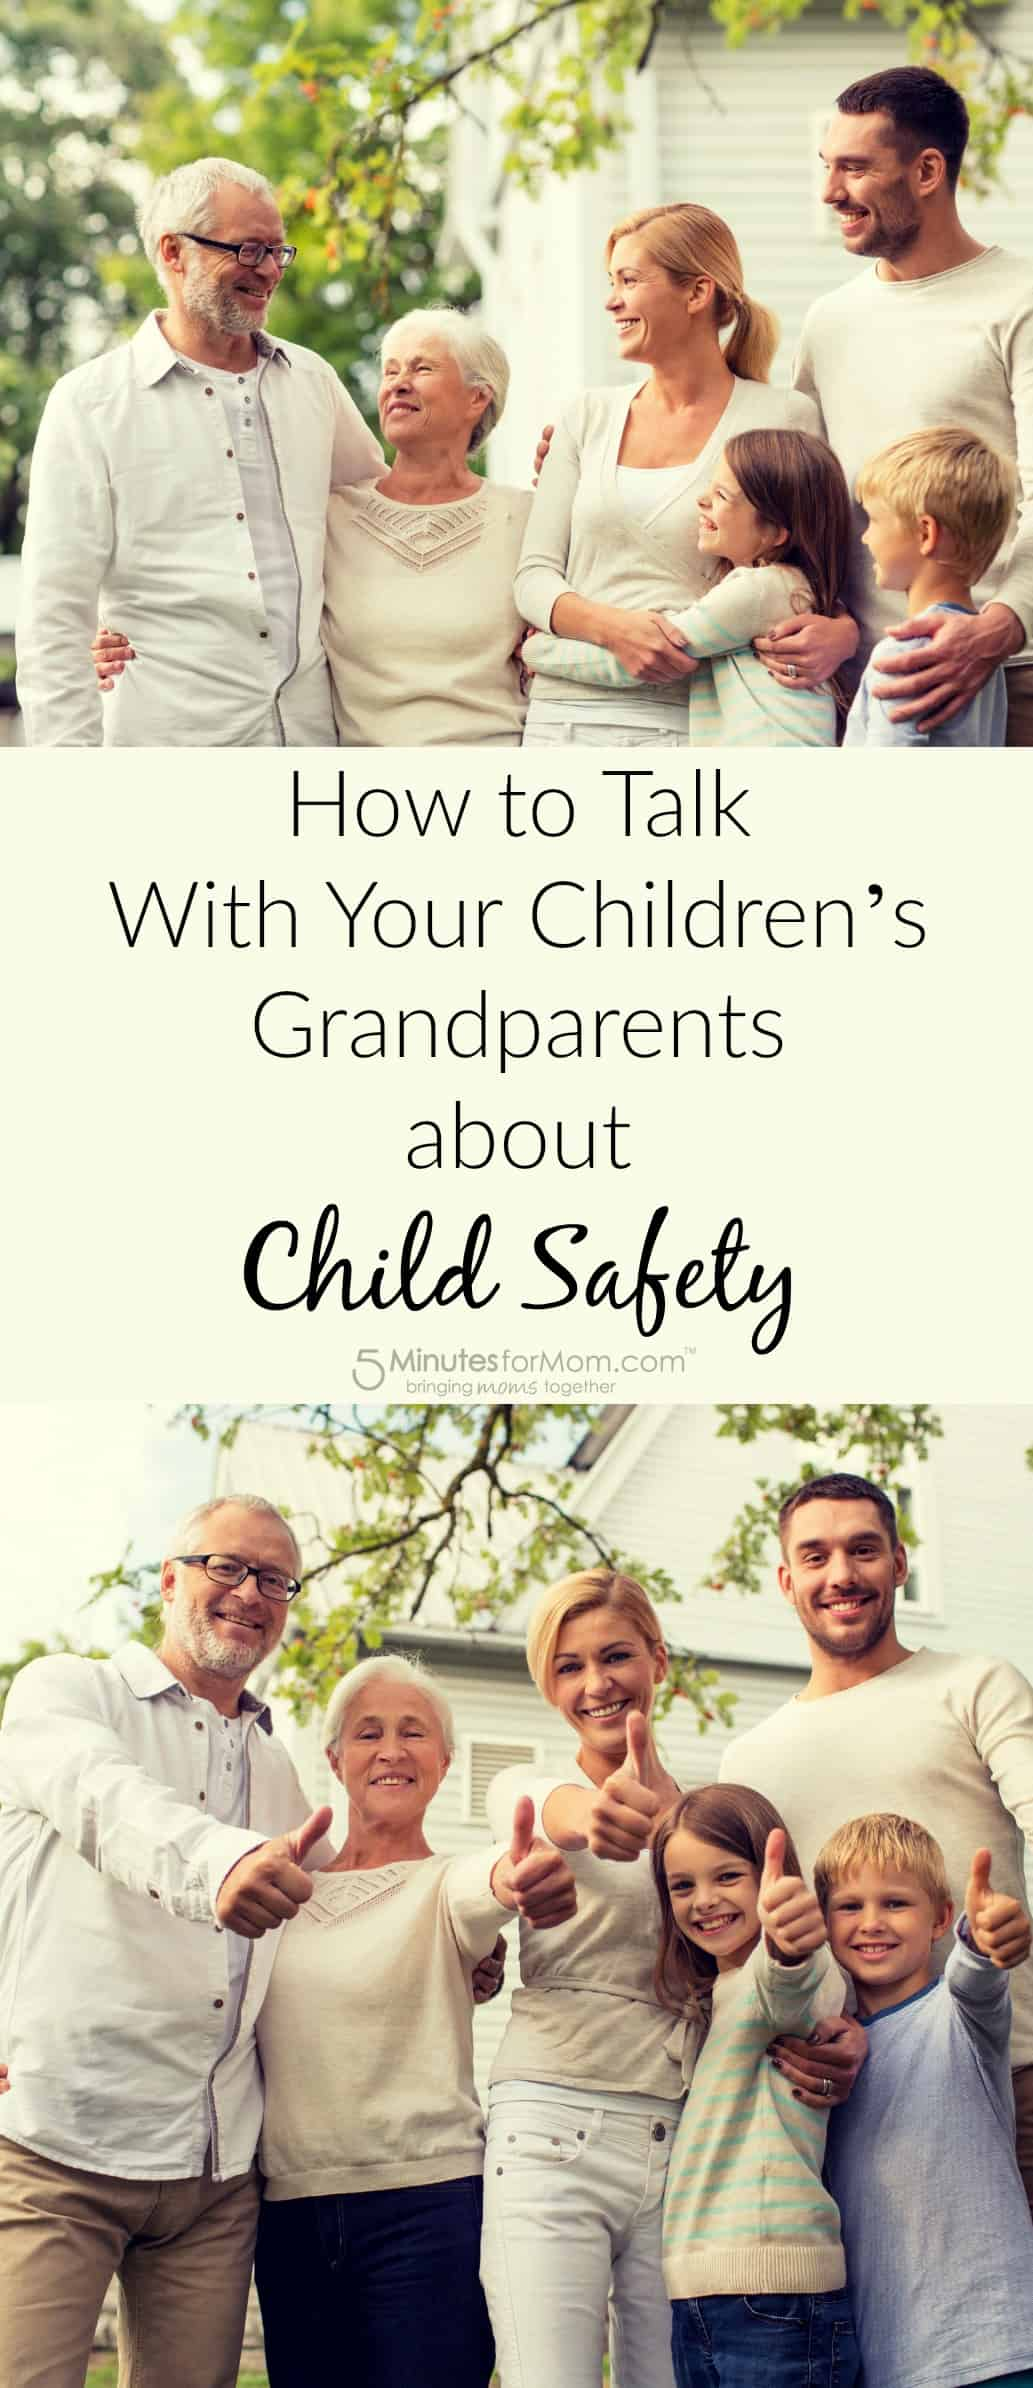 How to talk with grandparents about child safety